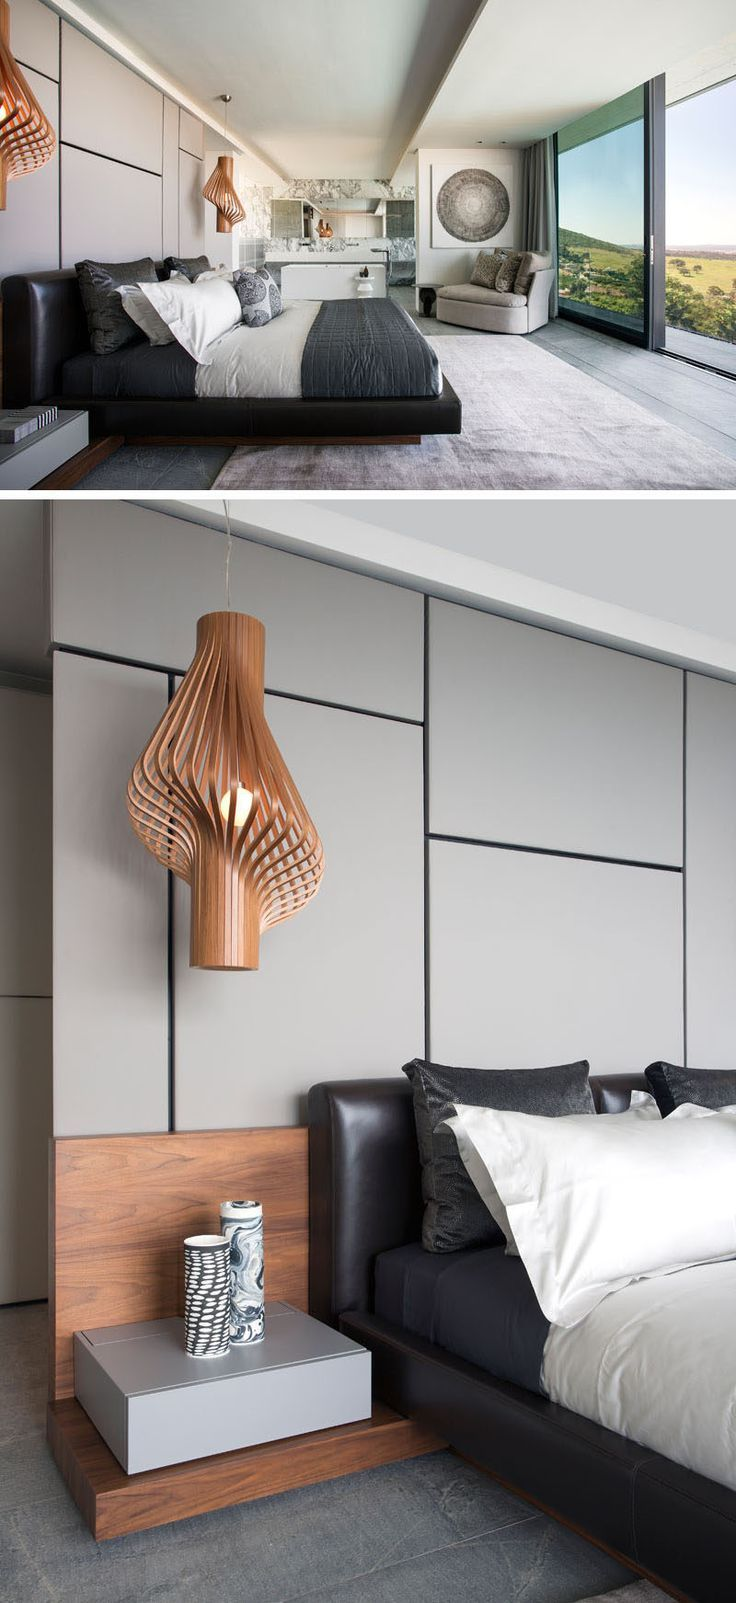 Master bedroom modern   Things That Are HOT On Pinterest This Week  Modern master bedroom